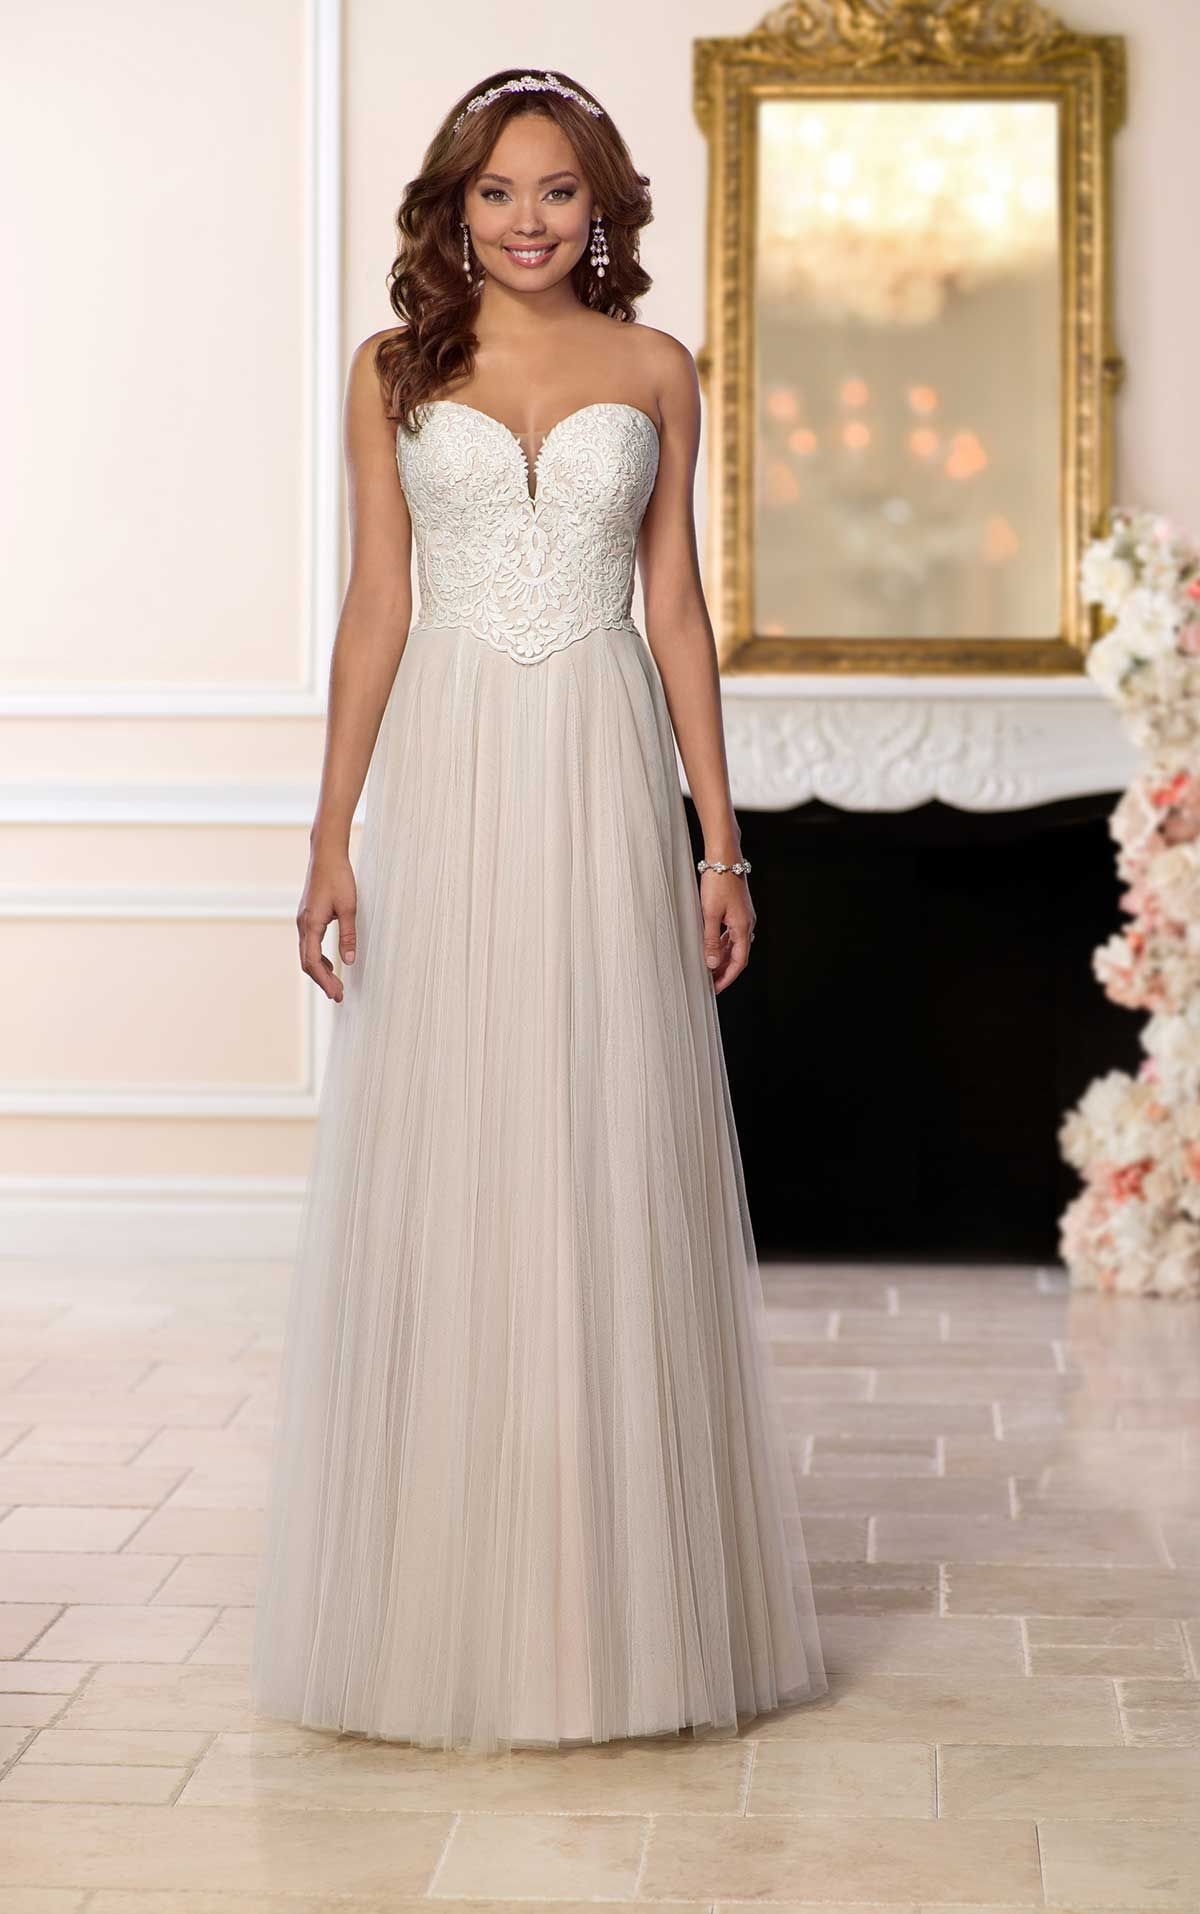 Affordable Wedding Dress with French Tulle | Stella york, Wedding ...